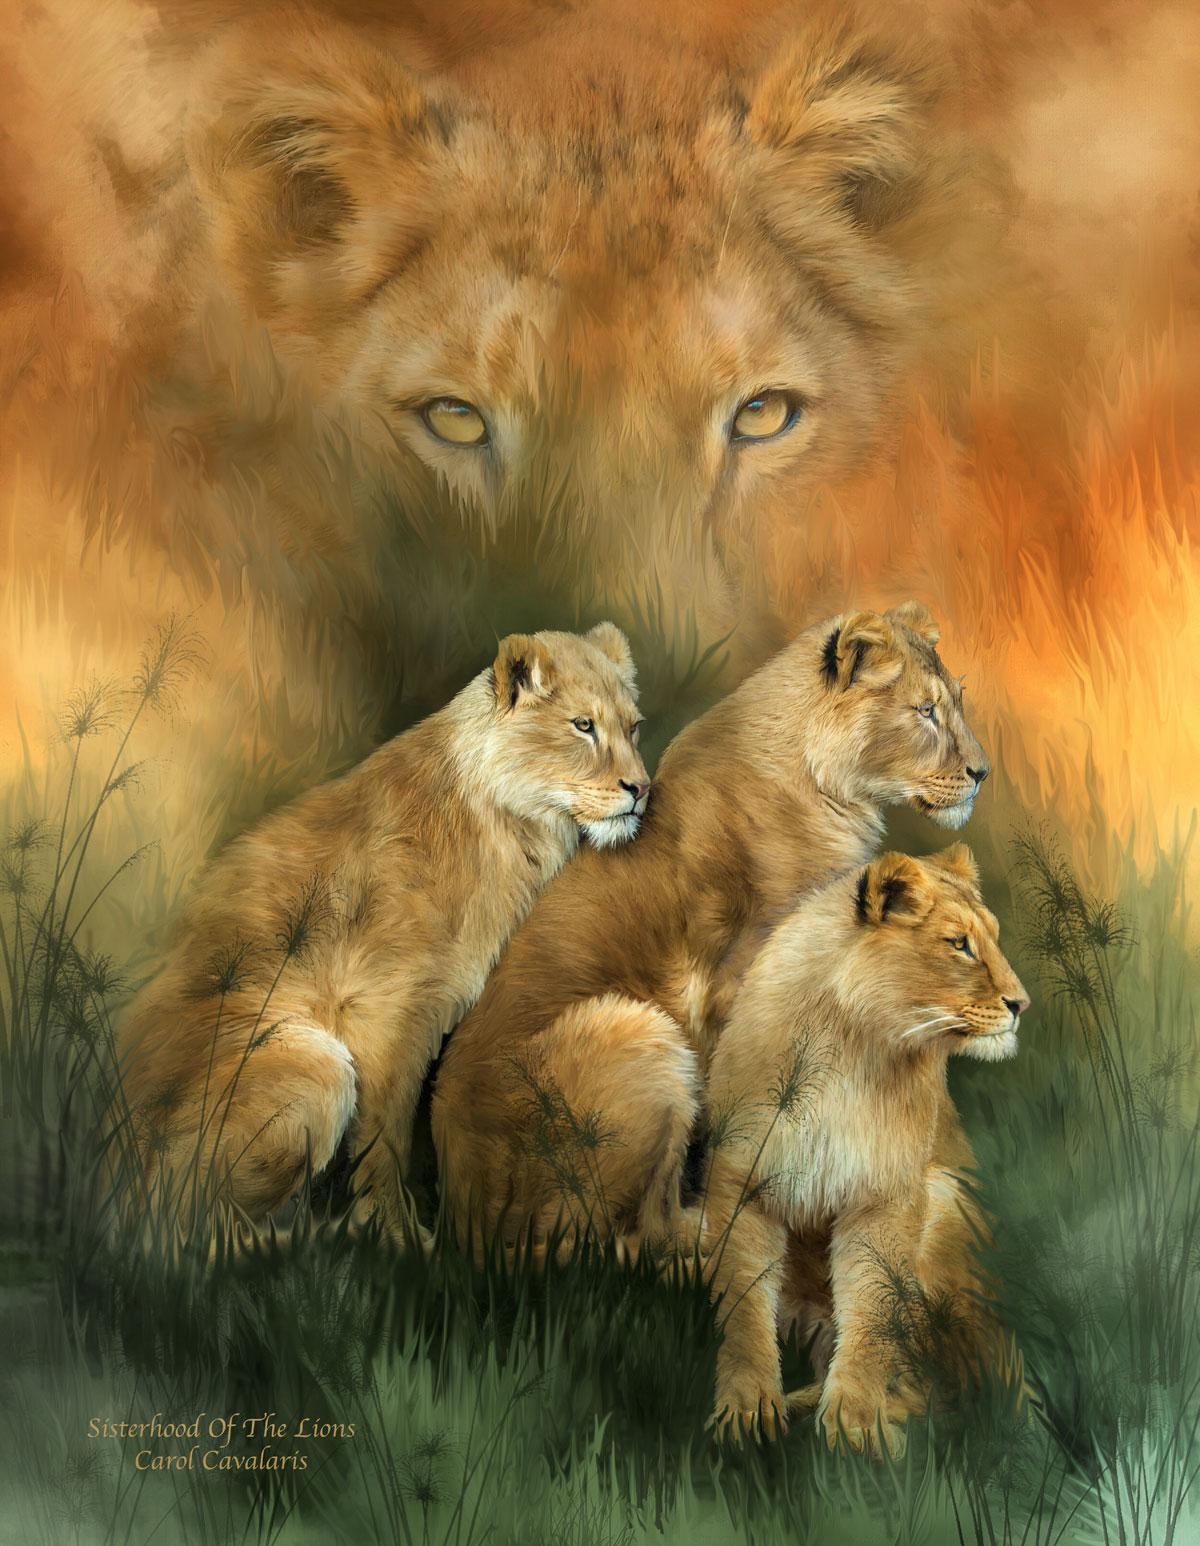 Sisterhood Of The Lions